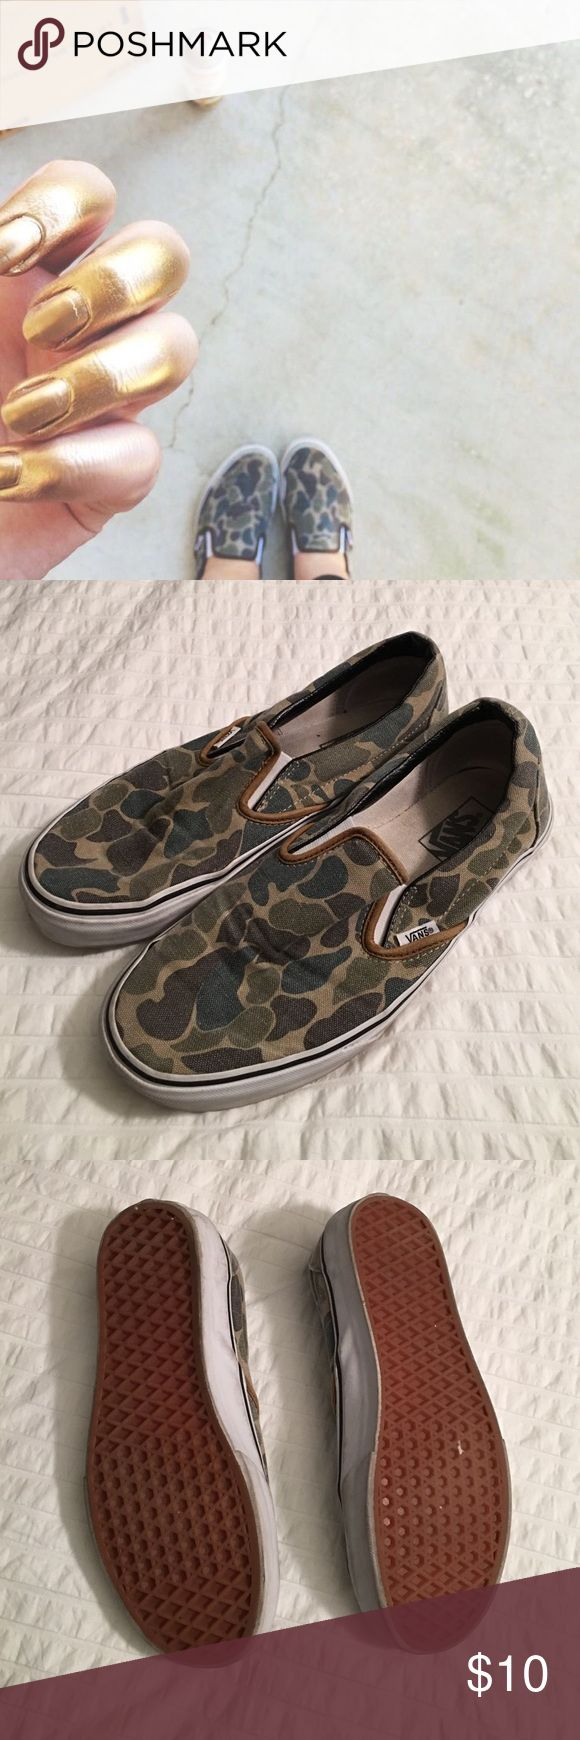 Vans camo slip ons Great condition vans. Leather trim on the inside of the heel. I'm a true 9.5 but sized up to a 10 for the width since it's a slip on Vans Shoes Sneakers